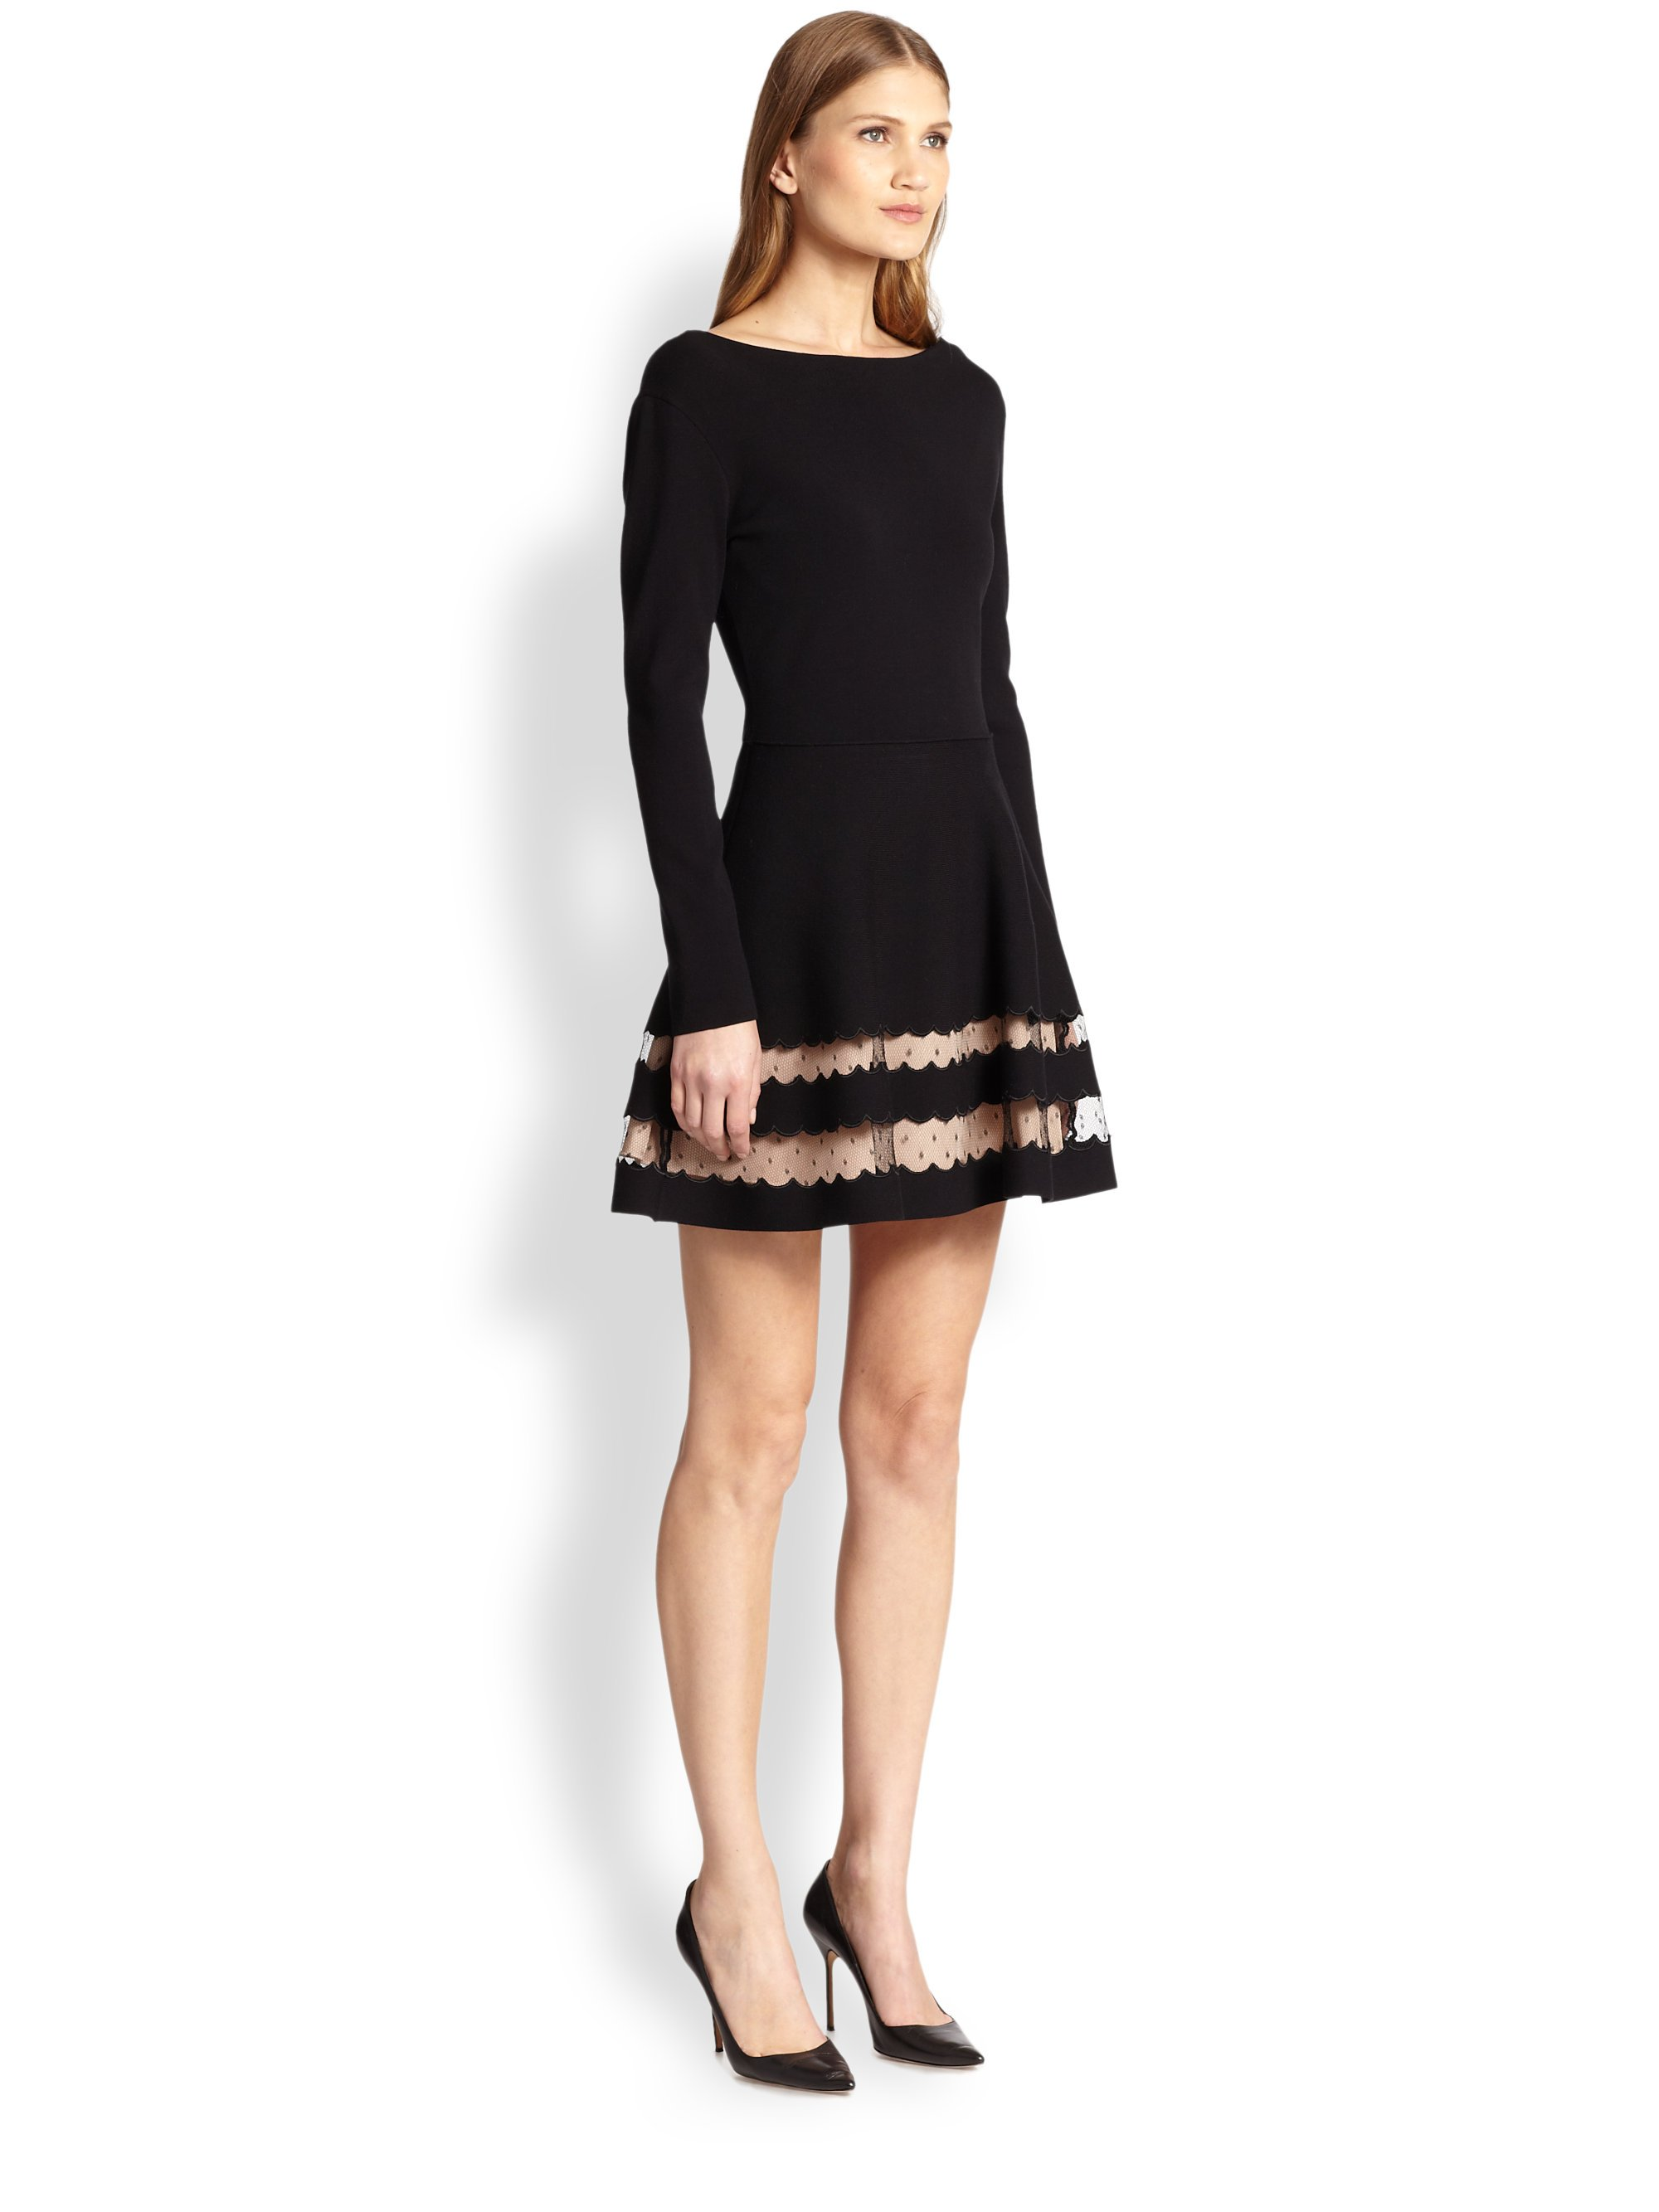 36a5250f01281 Lyst - RED Valentino Scalloped Dress in Black